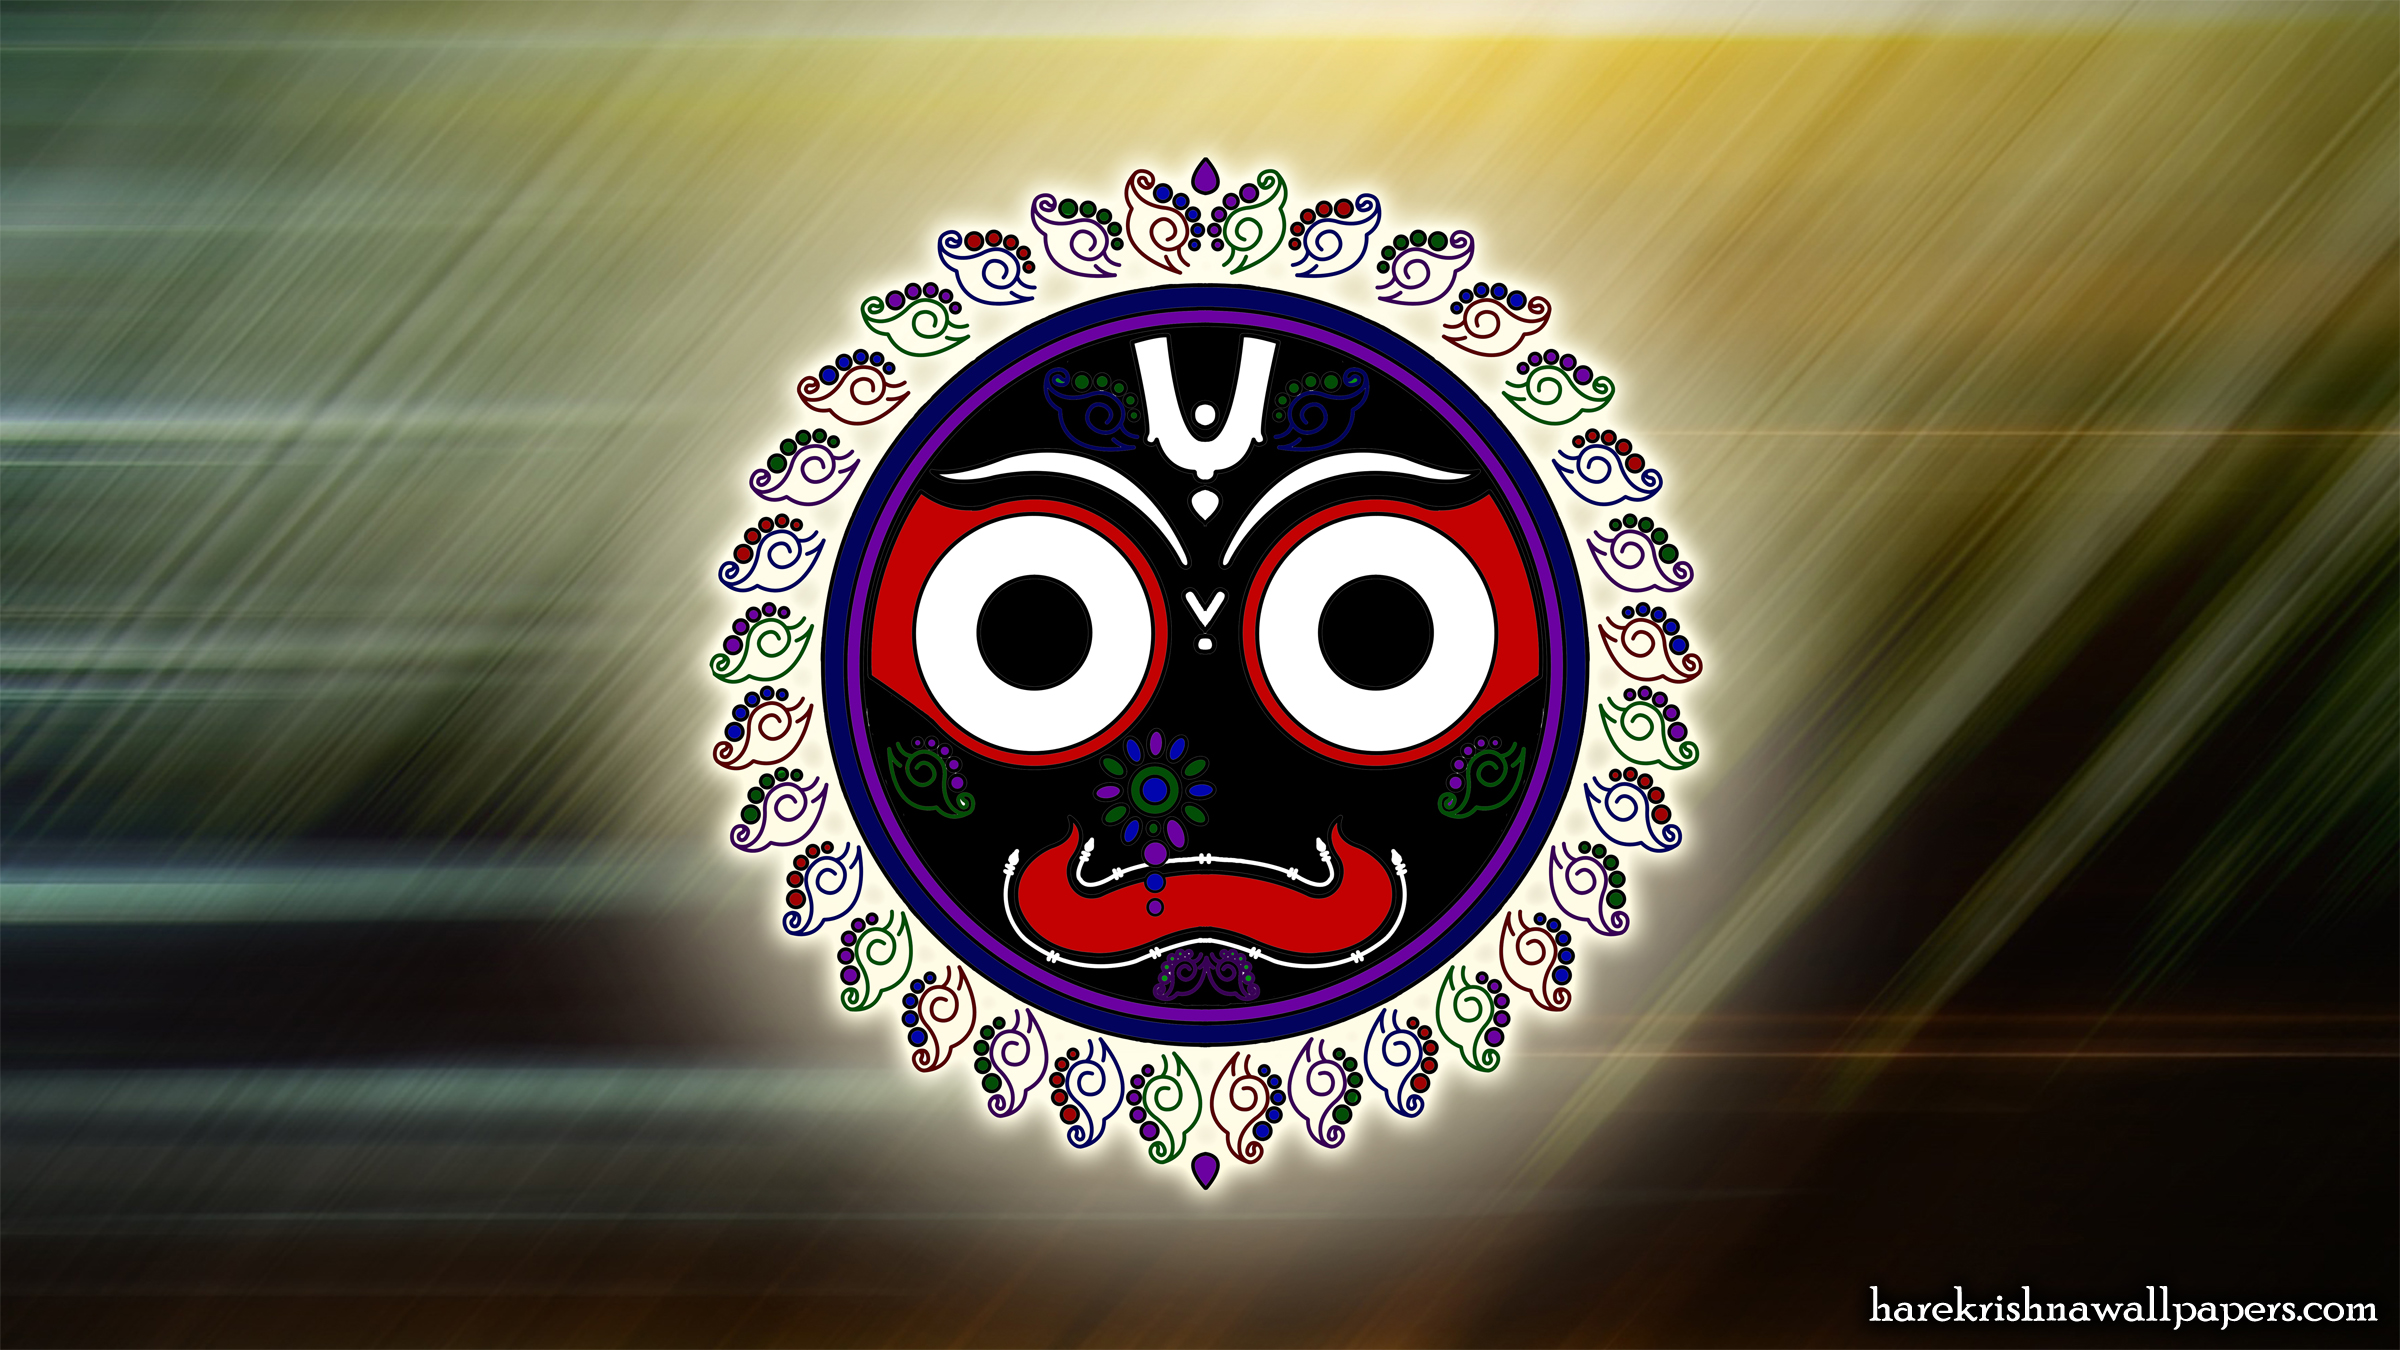 Jai Jagannath Wallpaper (037) Size 2400x1350 Download